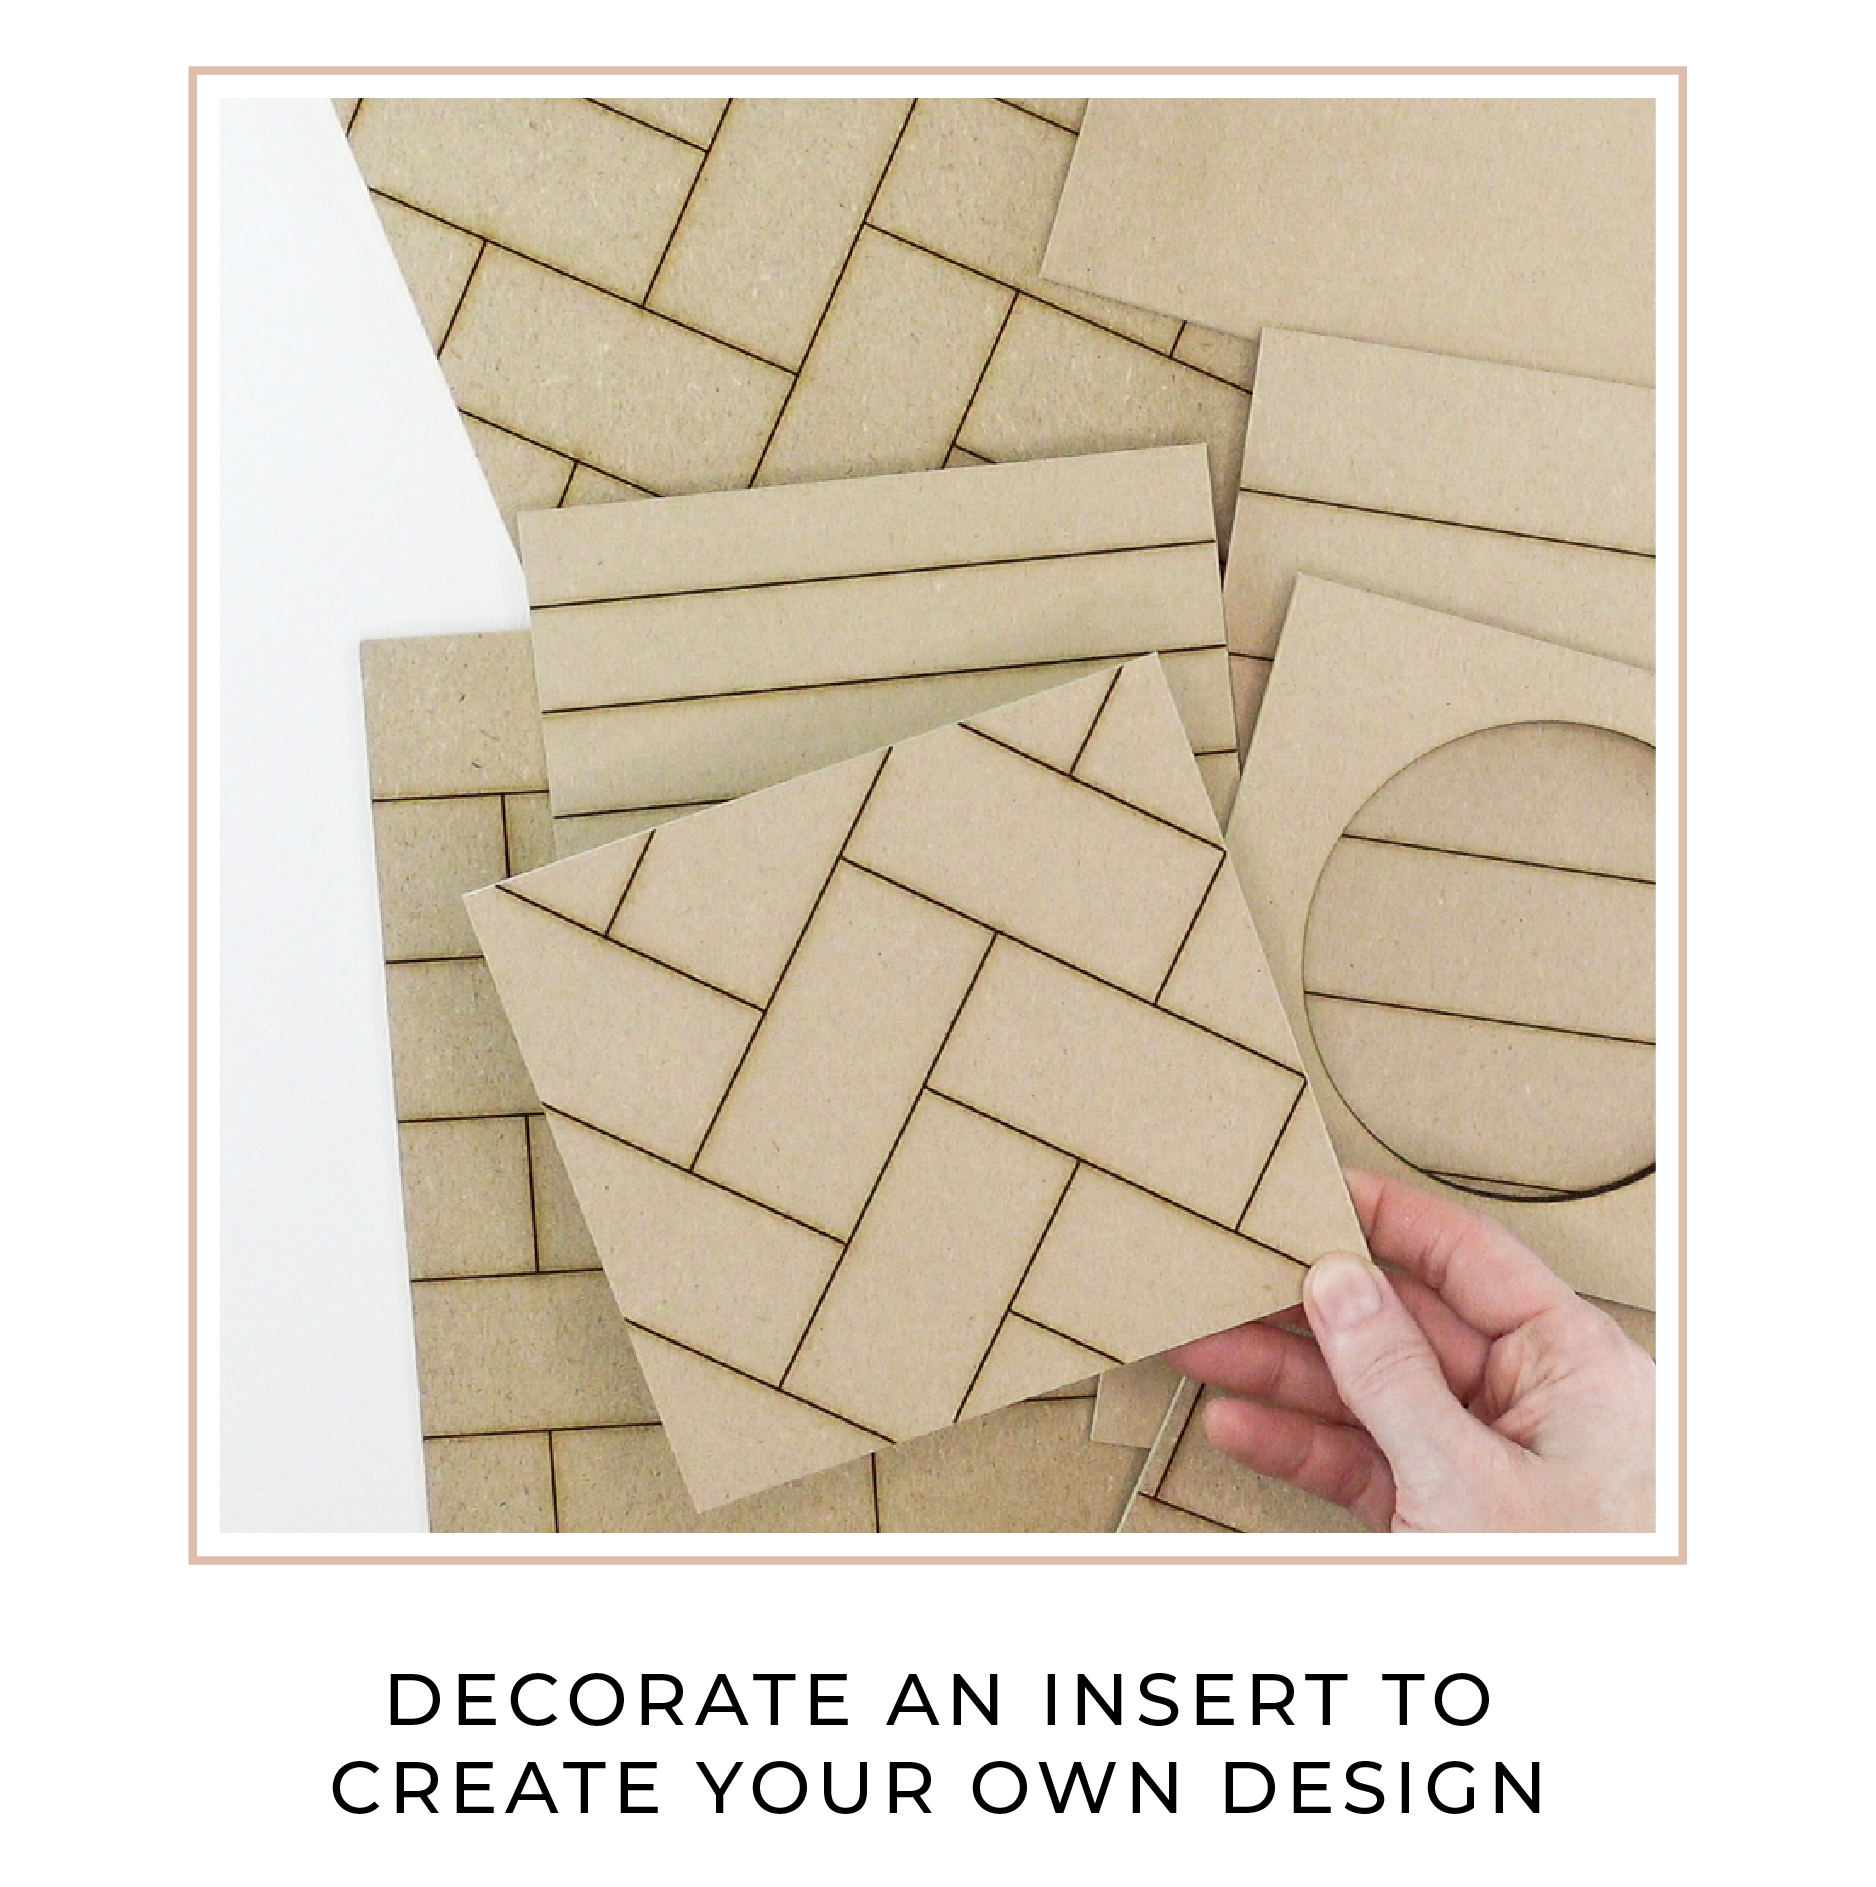 Decorate an insert to create your own design.